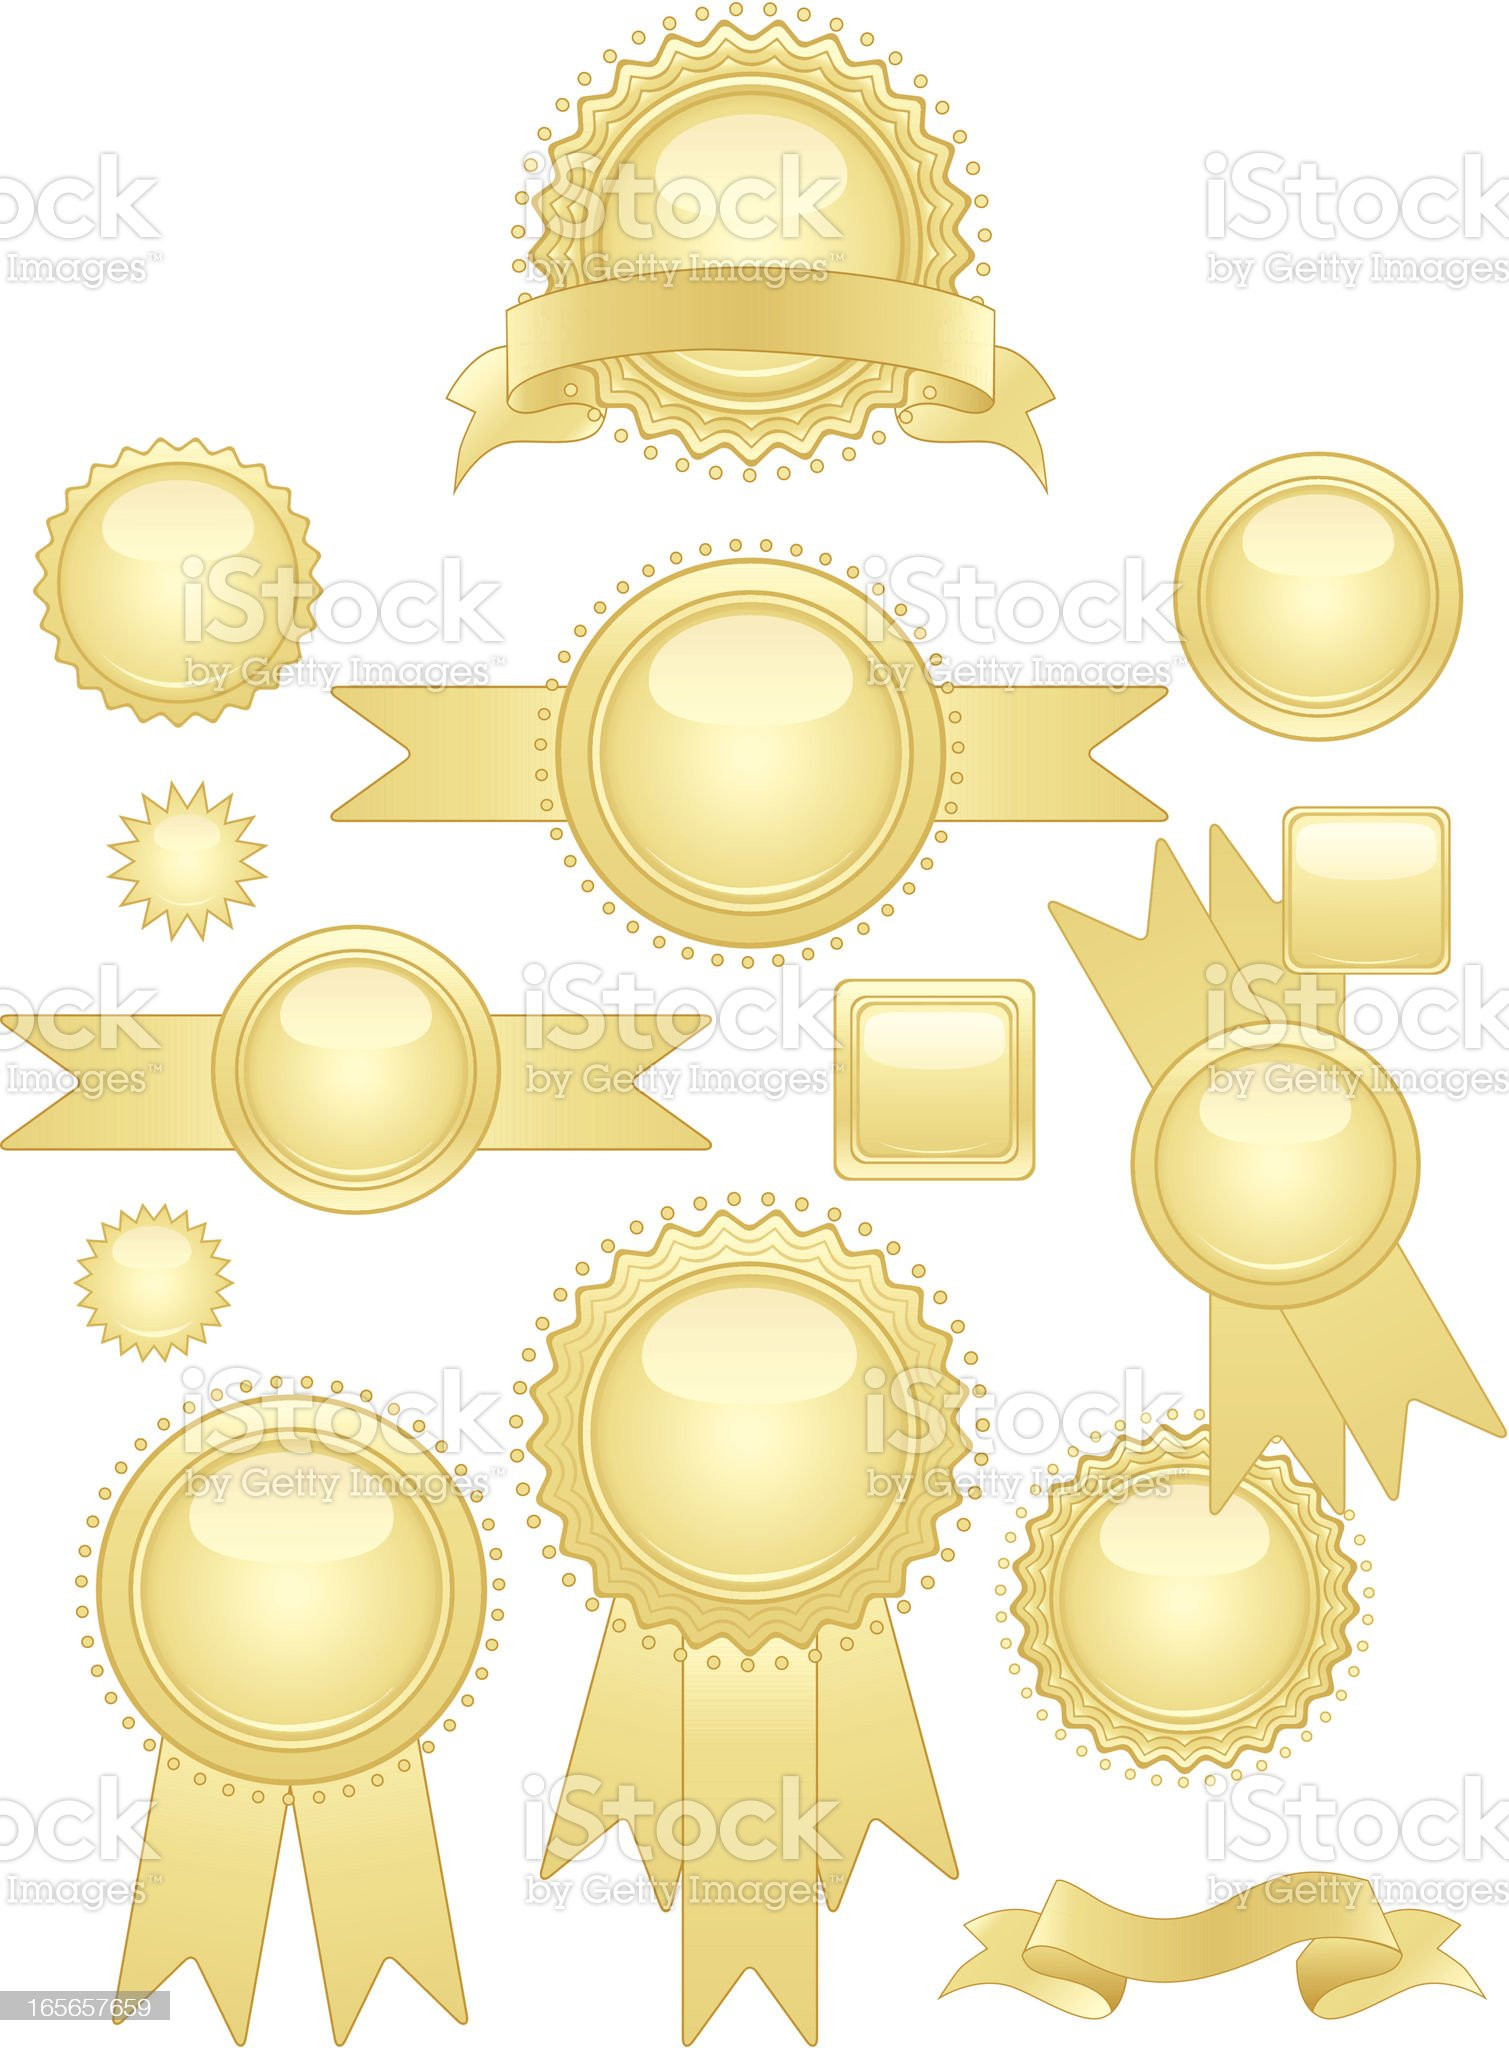 Shiny Gold Seals and Stickers Set royalty-free stock vector art